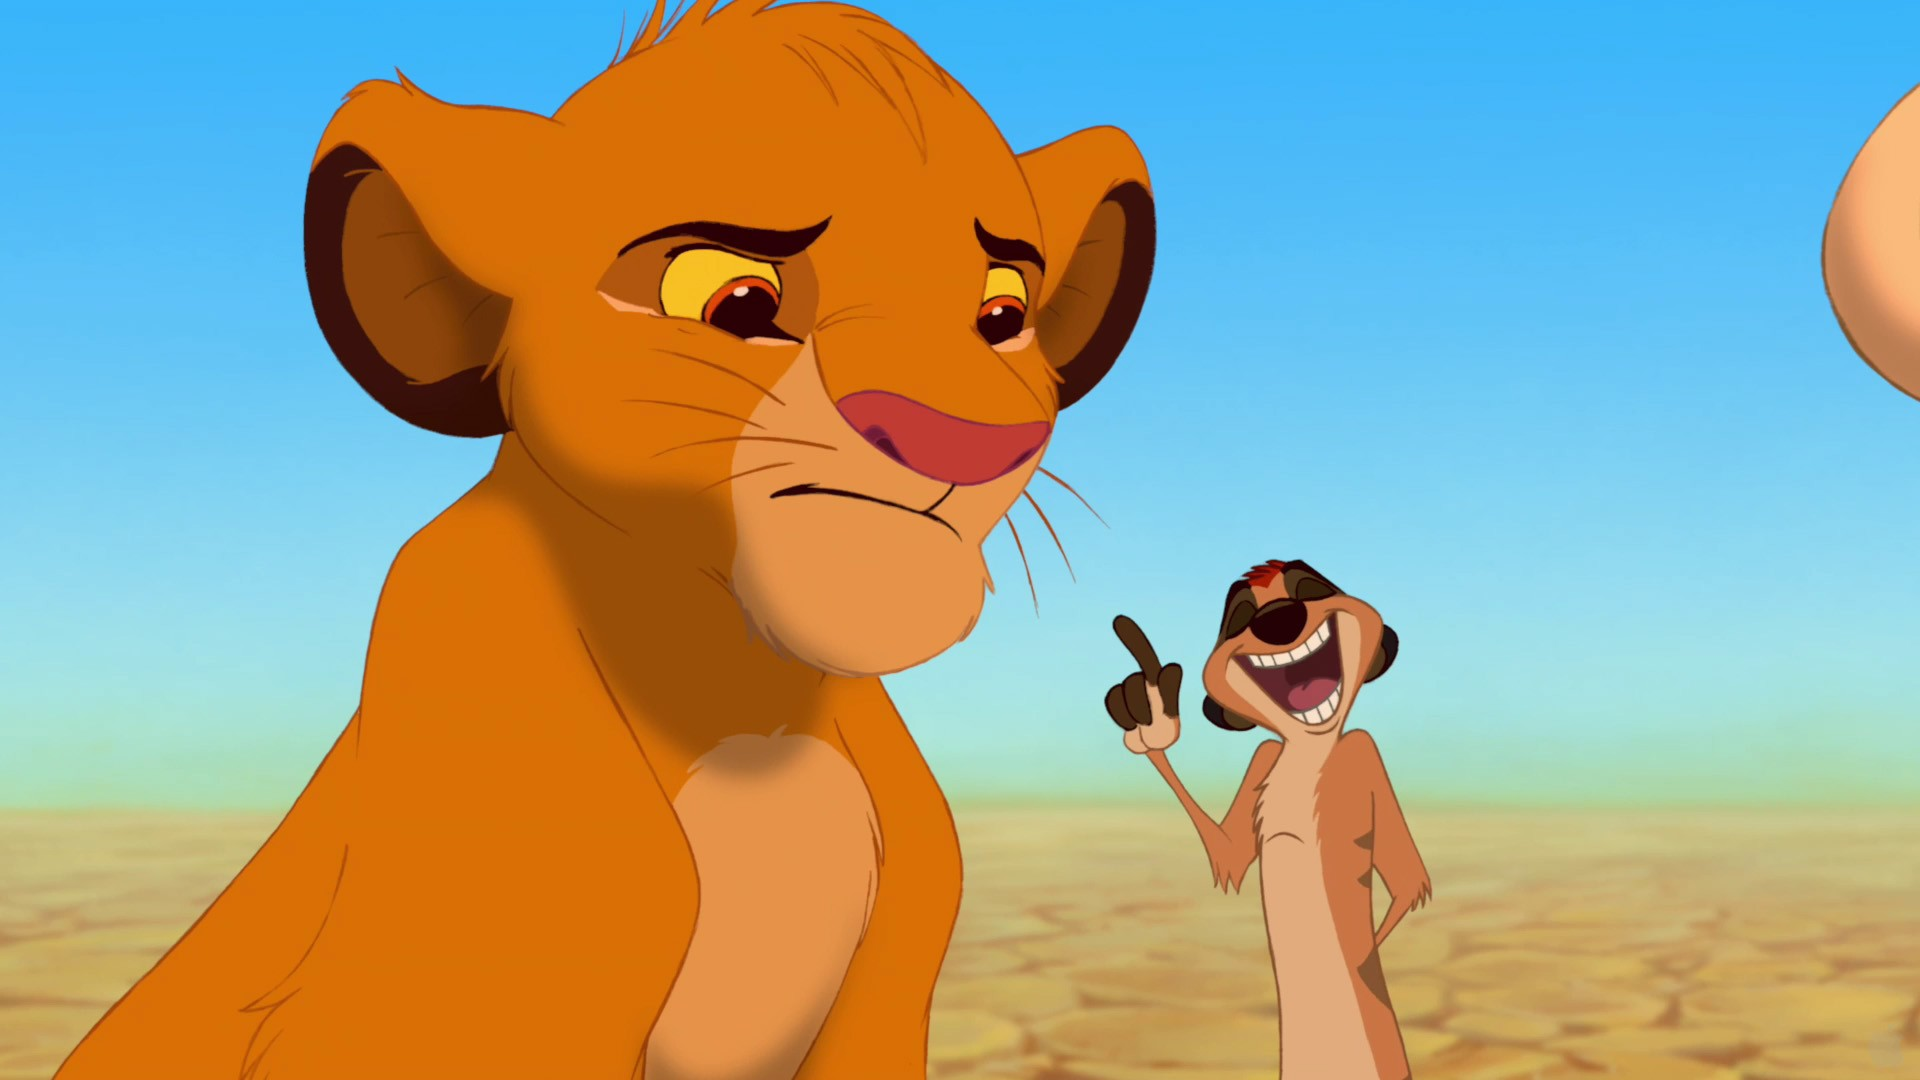 Uncategorized Lion King Timon the lion king full hd wallpaper and background 1920x1080 id338901 movie wallpaper